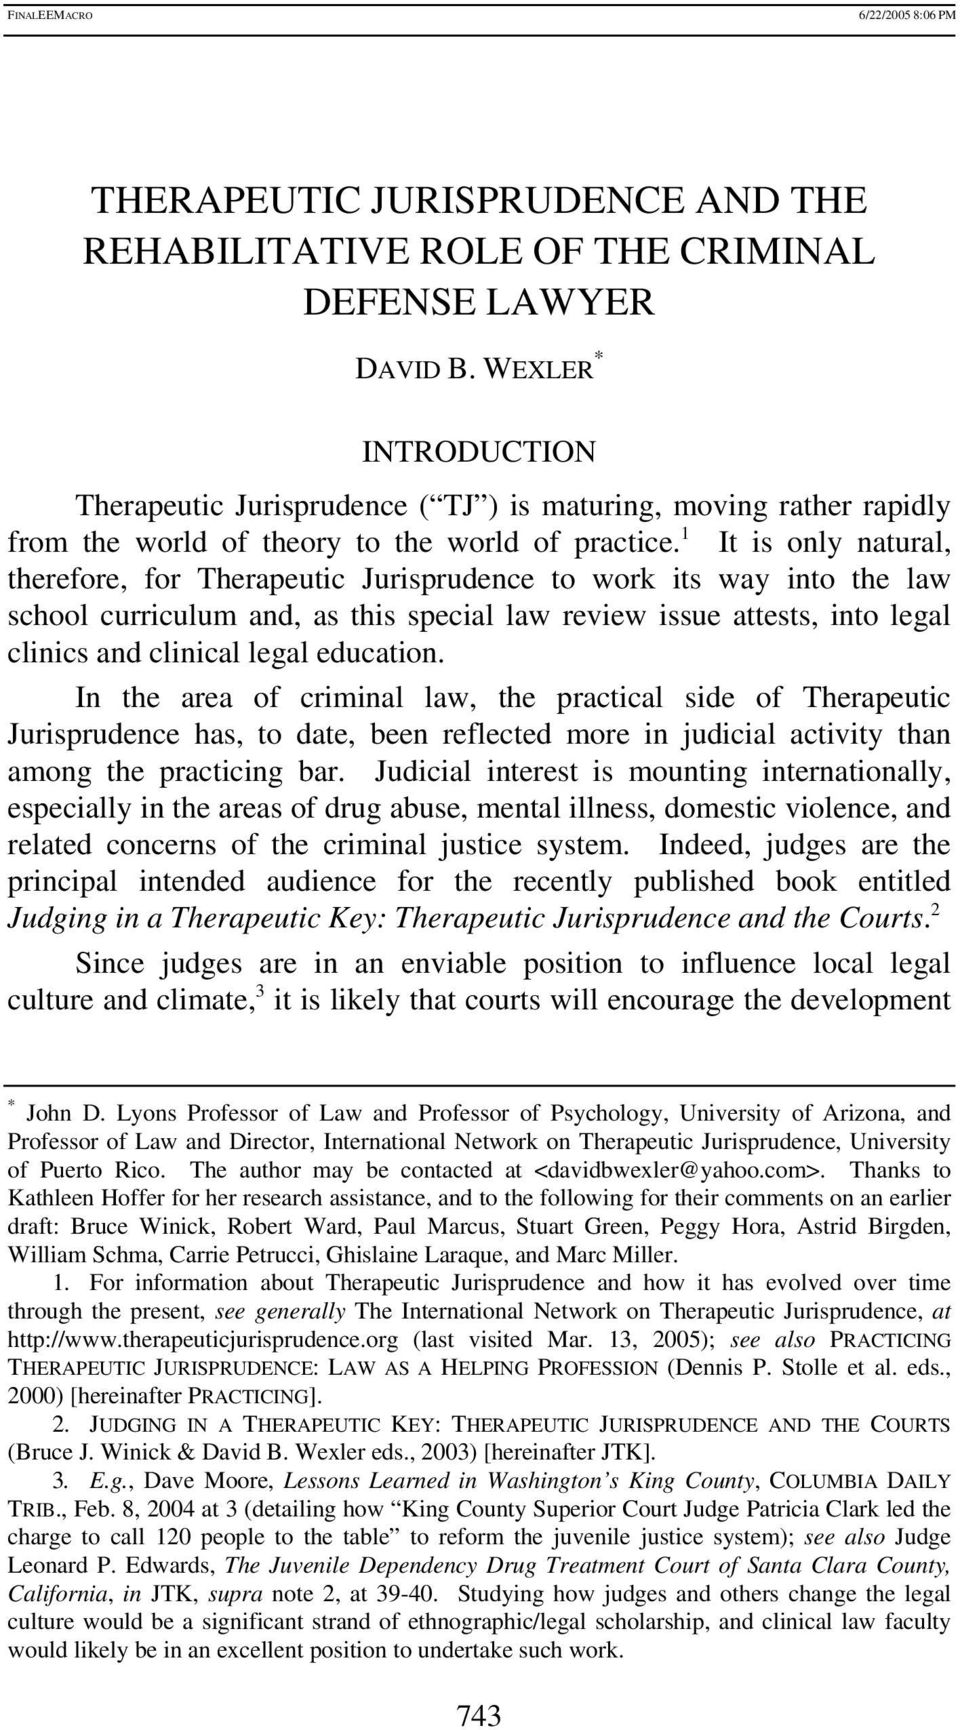 1 It is only natural, therefore, for Therapeutic Jurisprudence to work its way into the law school curriculum and, as this special law review issue attests, into legal clinics and clinical legal